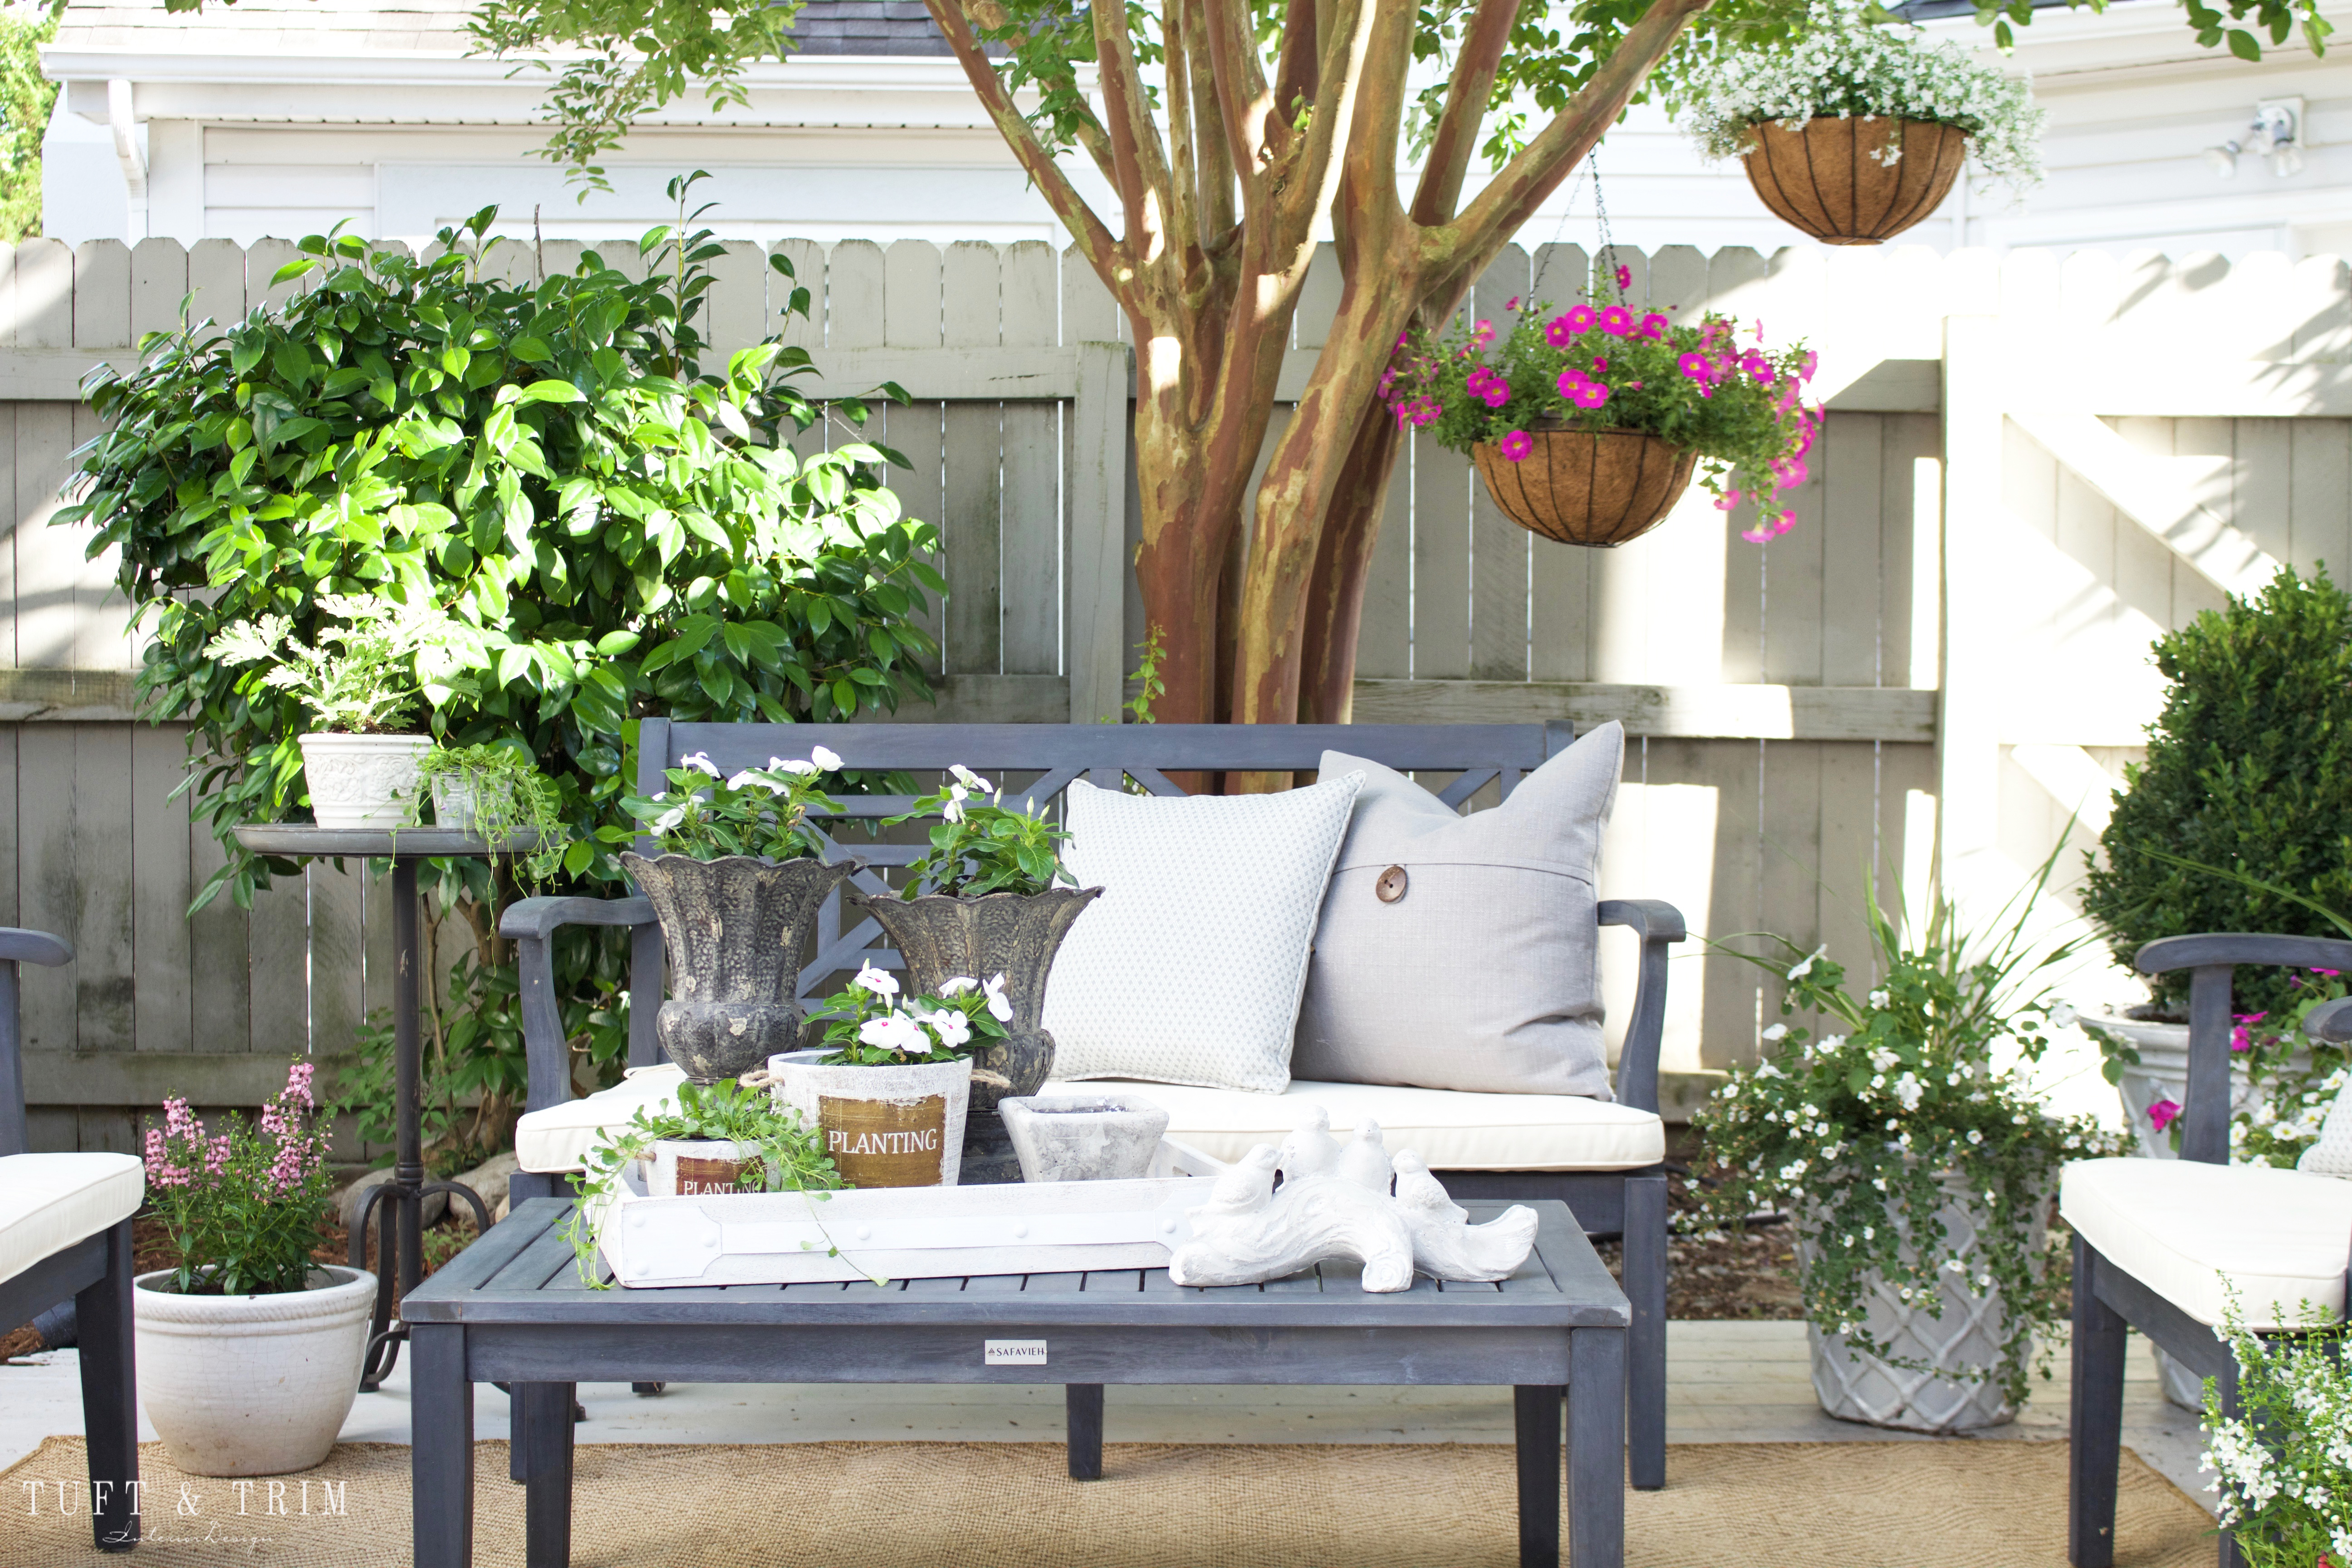 Summer Outdoor Living Blog Tour with Tuft & Trim